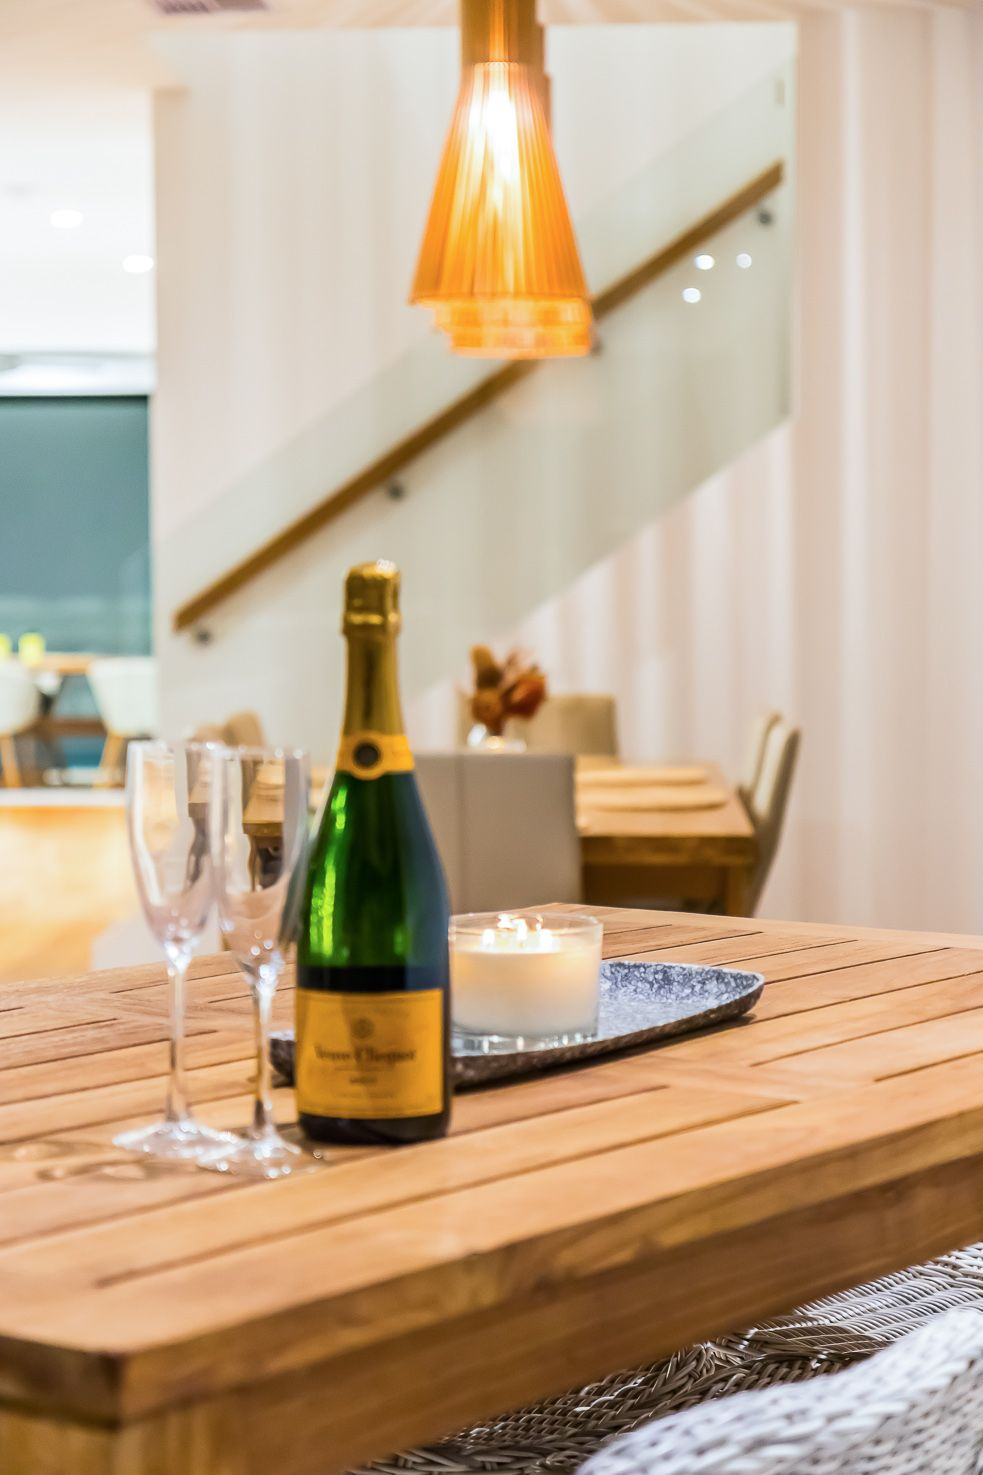 Brisbane Manly contemporary home close up of champagne and dining room